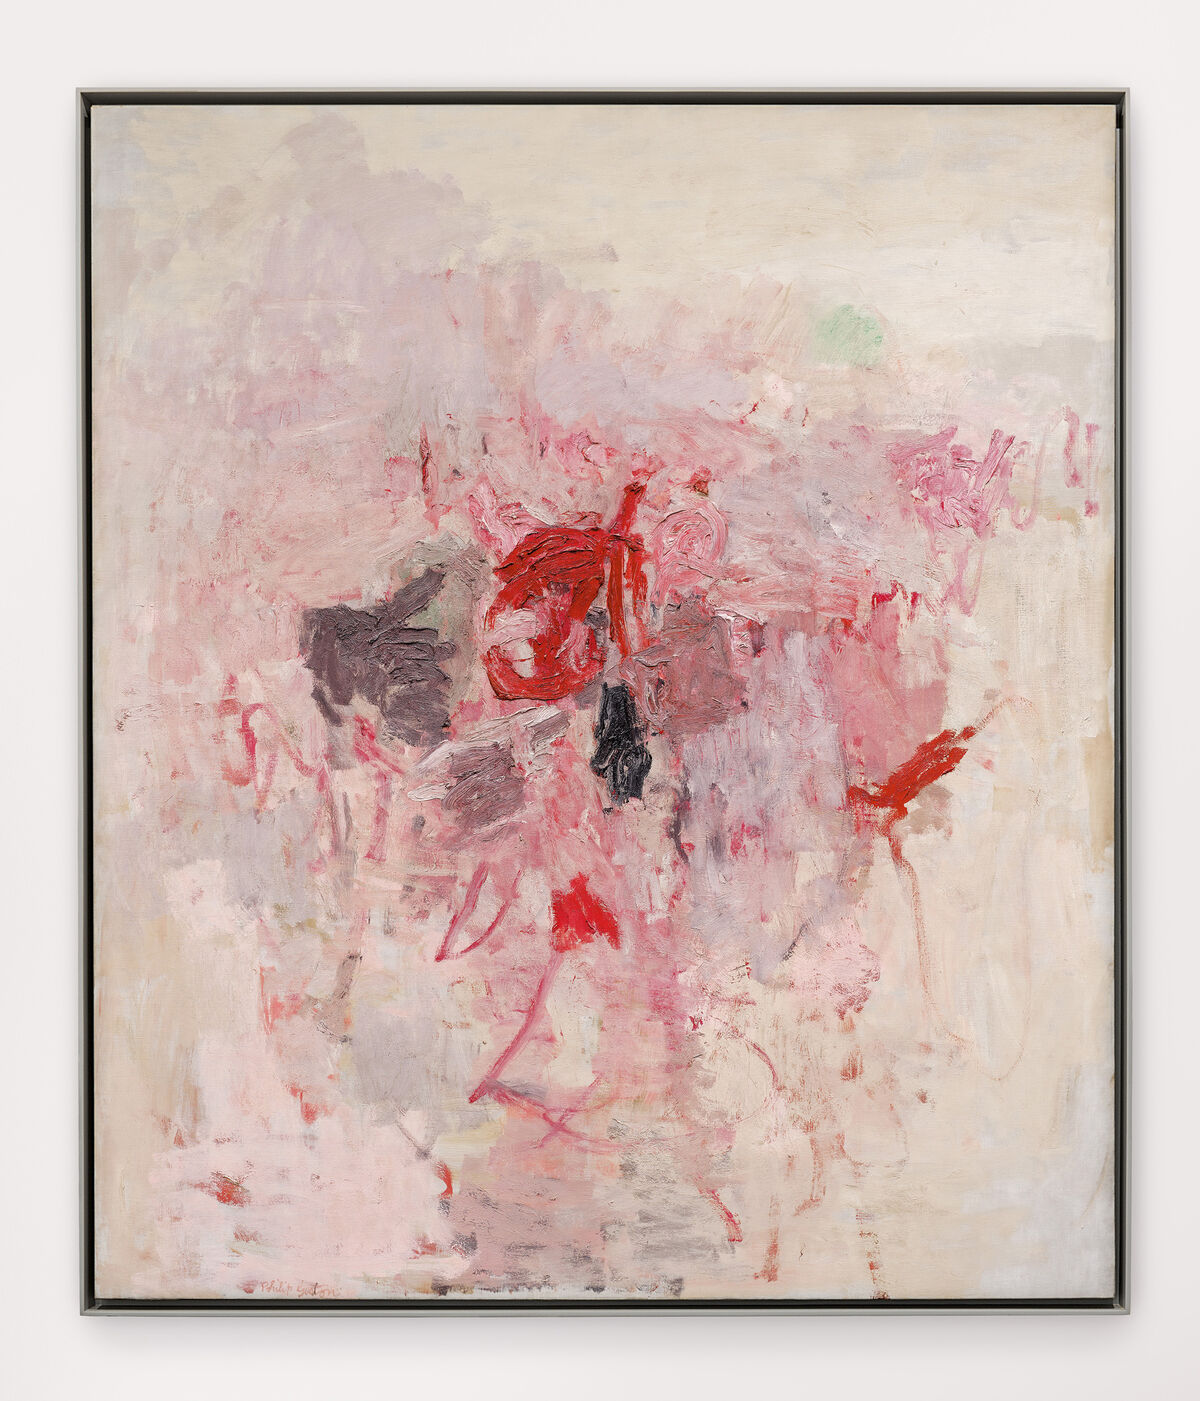 Philip Guston, The Visit, 1955. © Philip Guston. Courtesy of the artist and Hauser & Wirth.